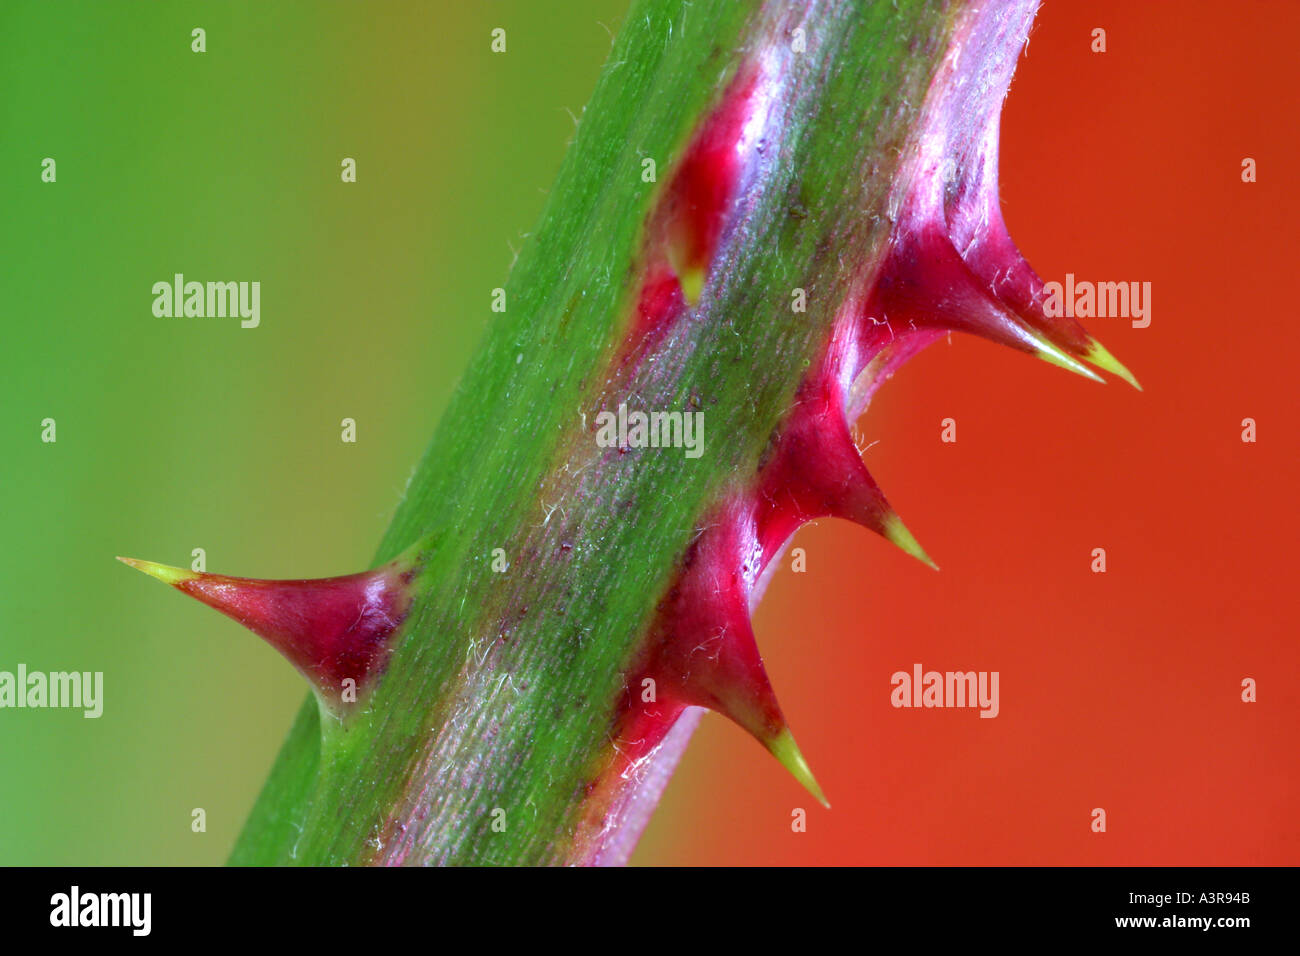 A blackberry cane or stem against a colorful background - Stock Image